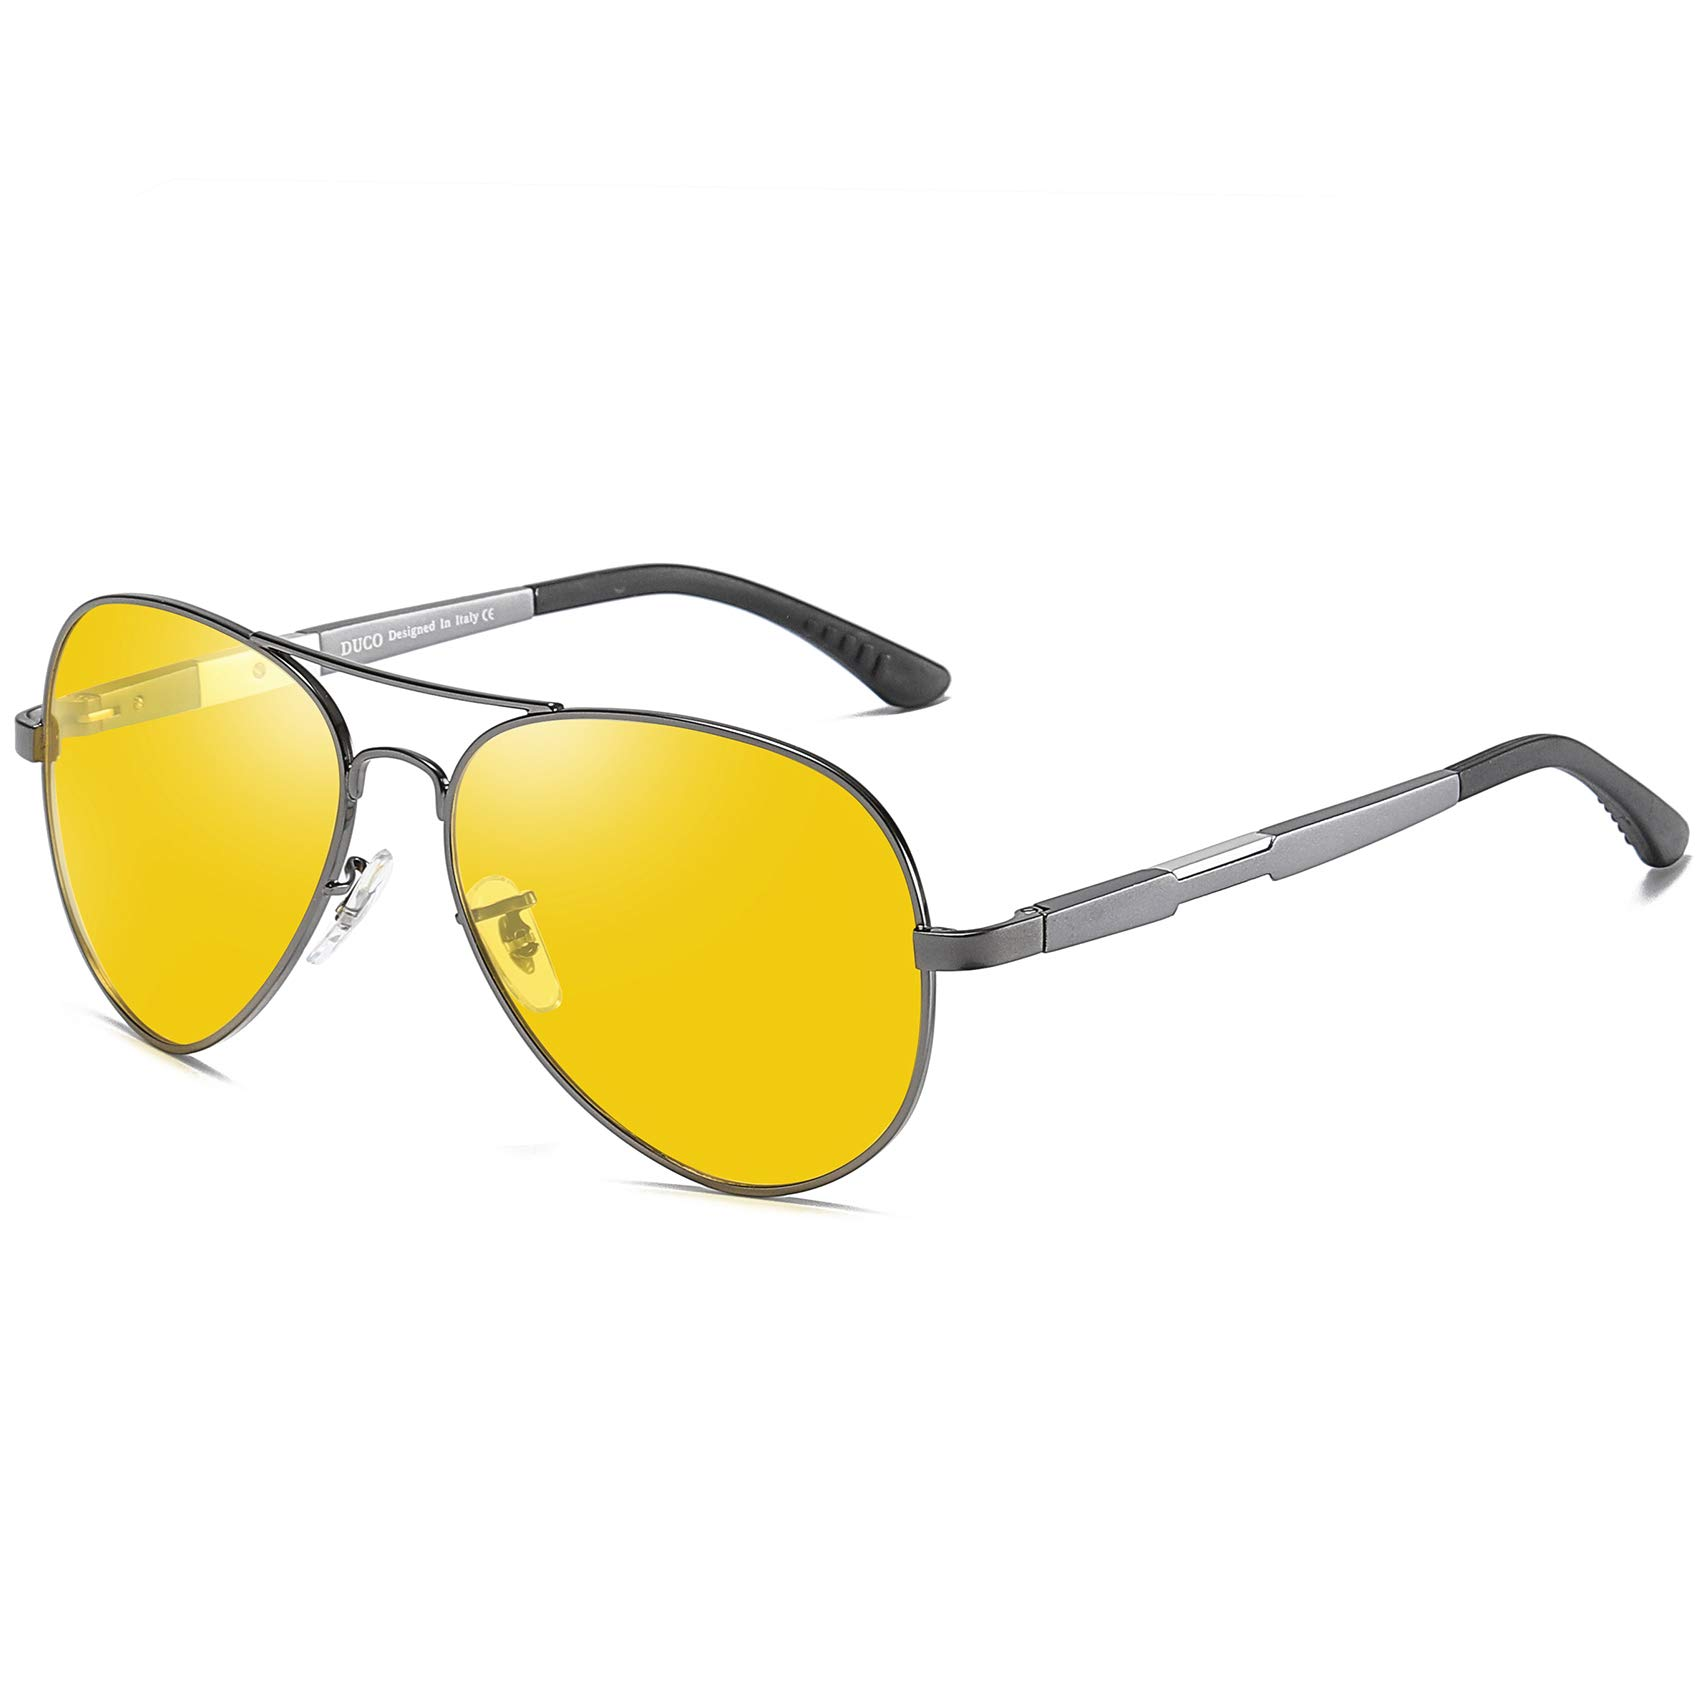 Duco Pilot Style Night Vision Polarized Anti-Glare Glasses For Mens Womens Sports 3026 (Gunmetal) by DUCO